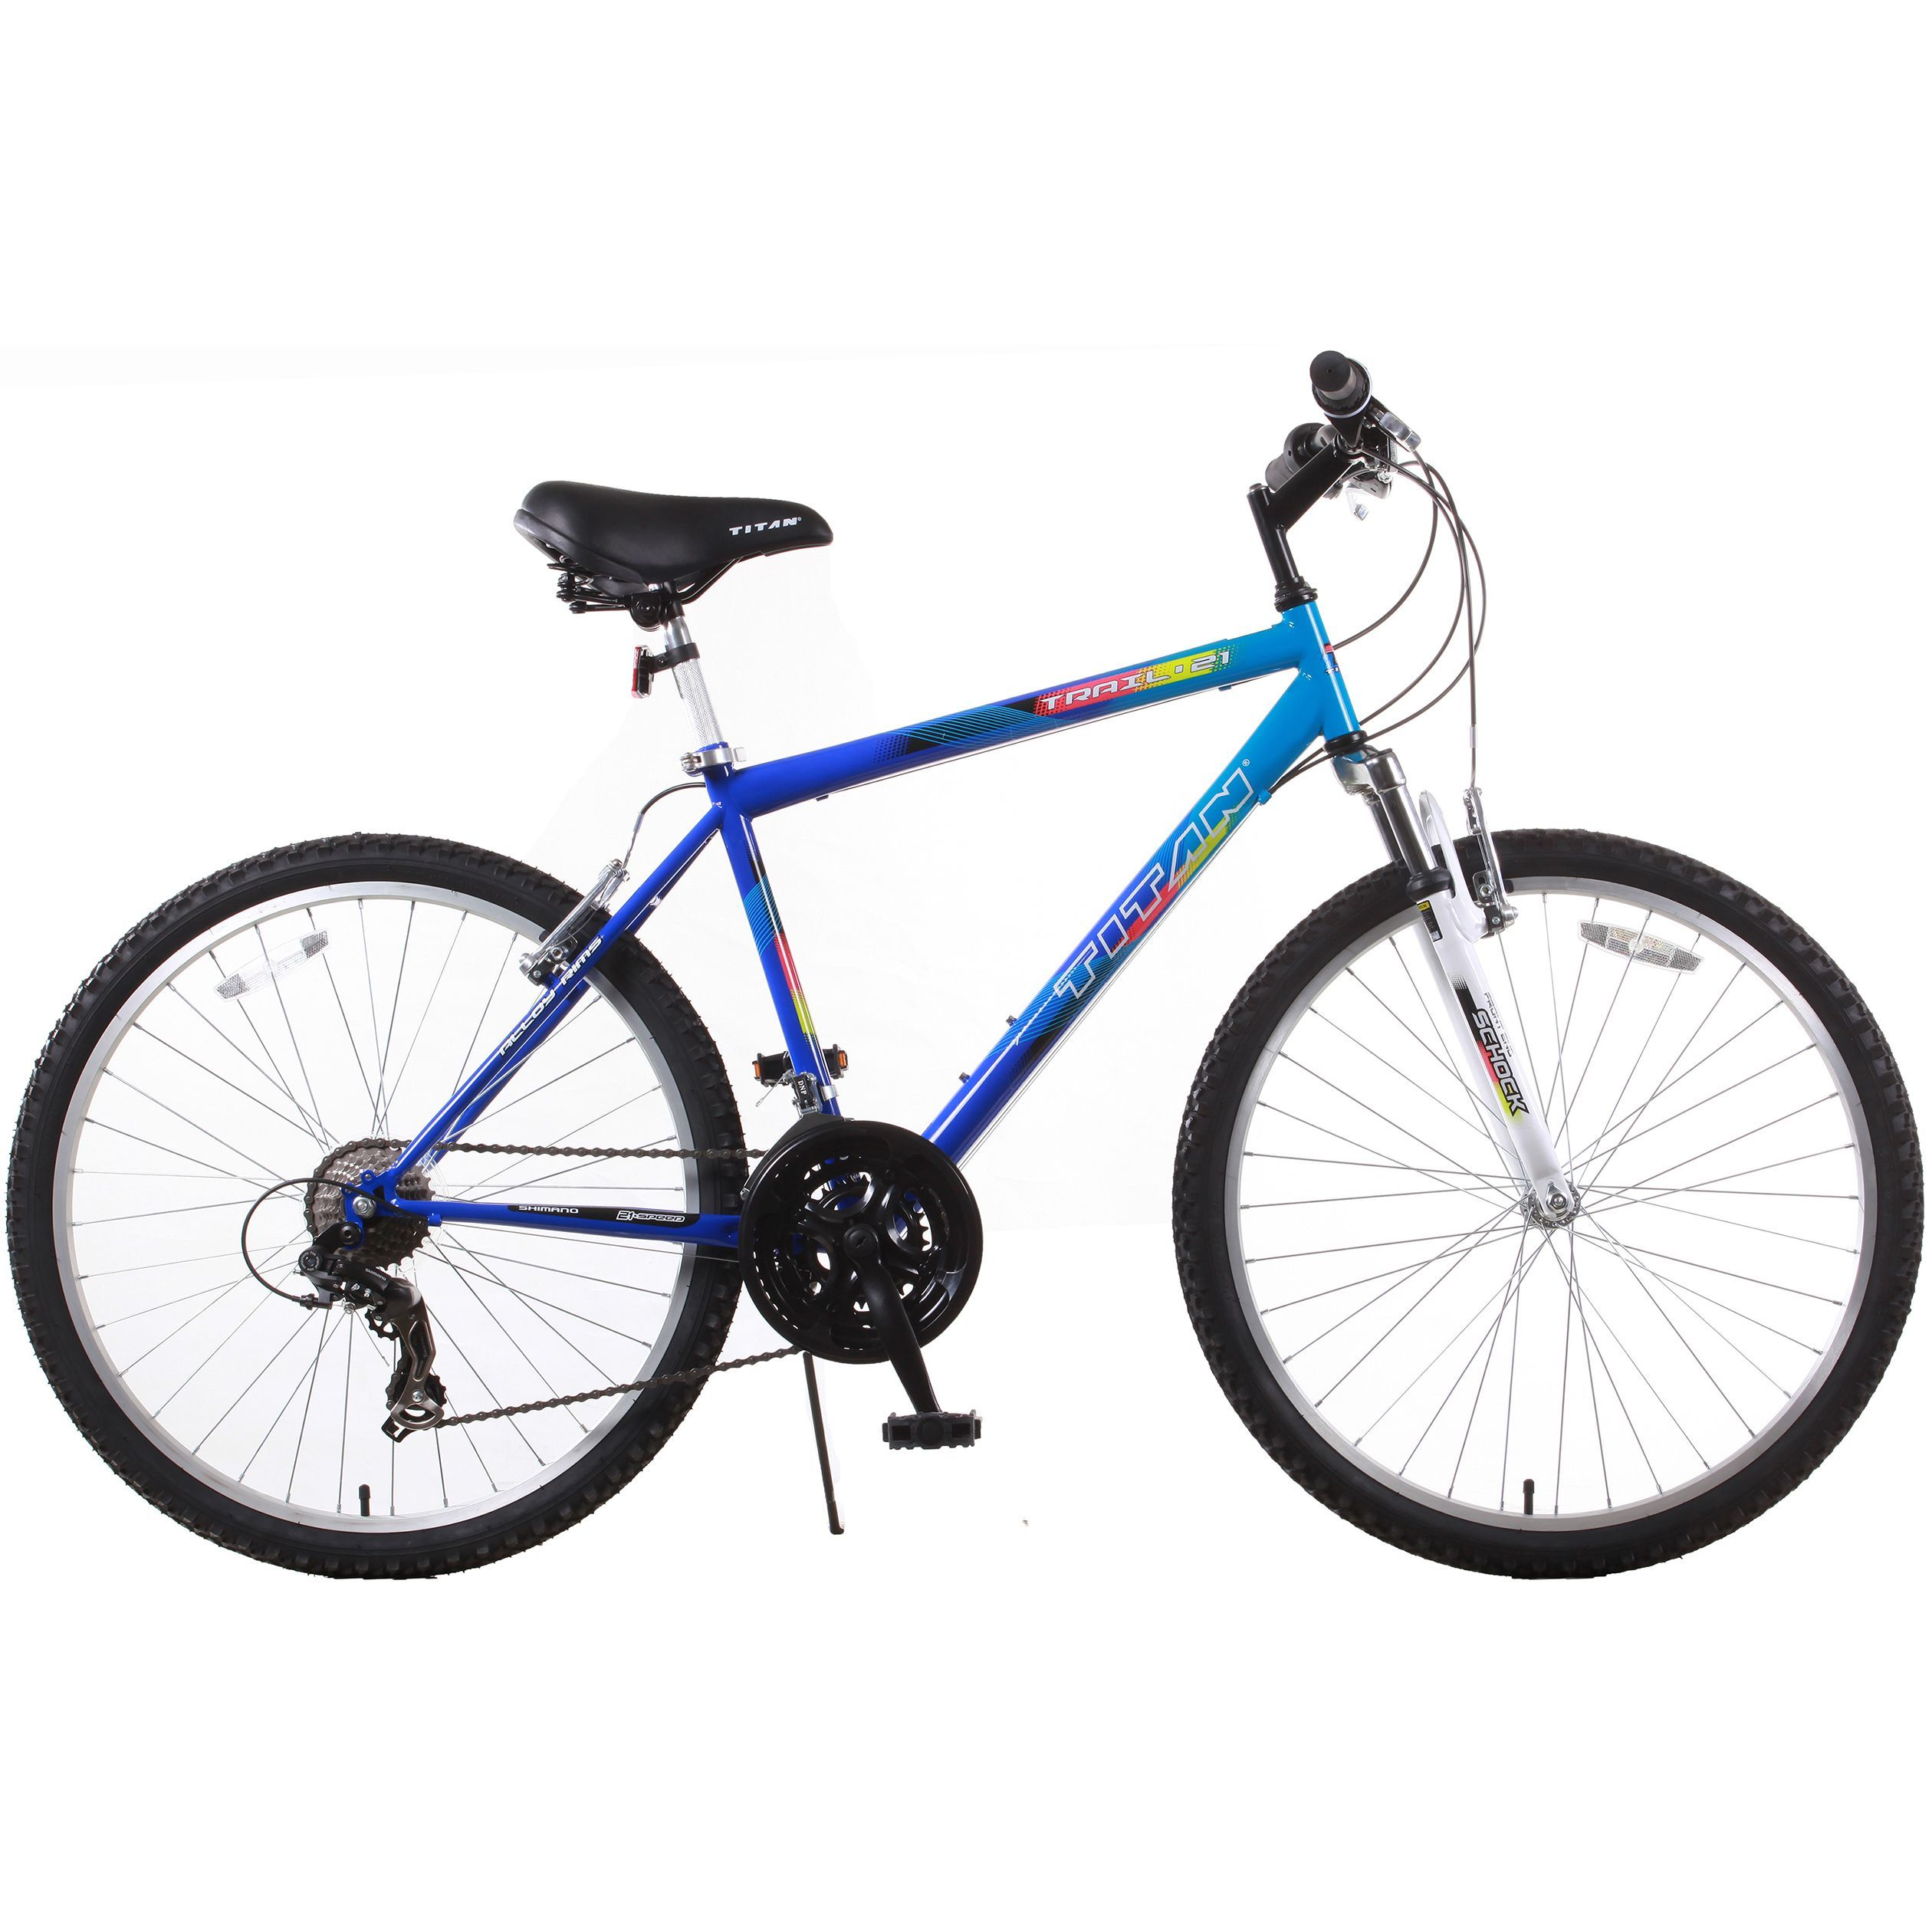 Hi-Ten Steel-Frame Mountain Bike with Zoom Front-Suspension Fork ...